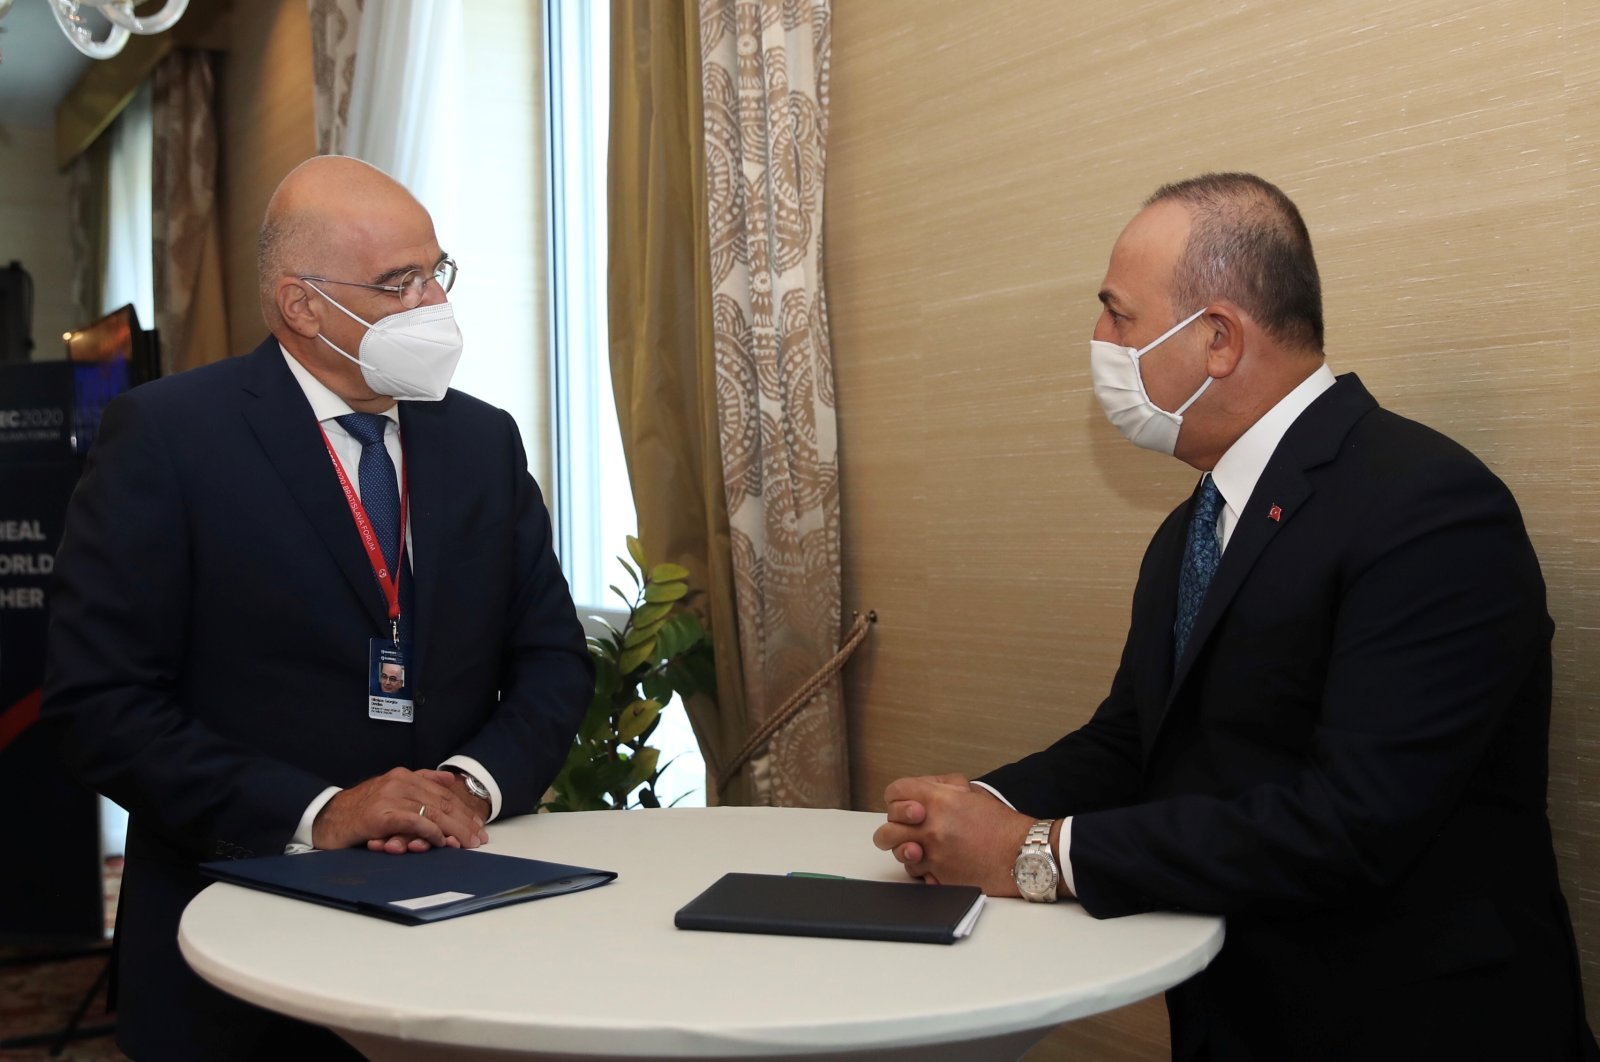 Foreign Minister Mevlüt Çavuşoğlu speaks with his Greek counterpart Nikos Dendias on the sidelines of the Global Security Forum in Bratislava, Slovakia, Oct. 8, 2020. (Turkish Foreign Ministry handout)